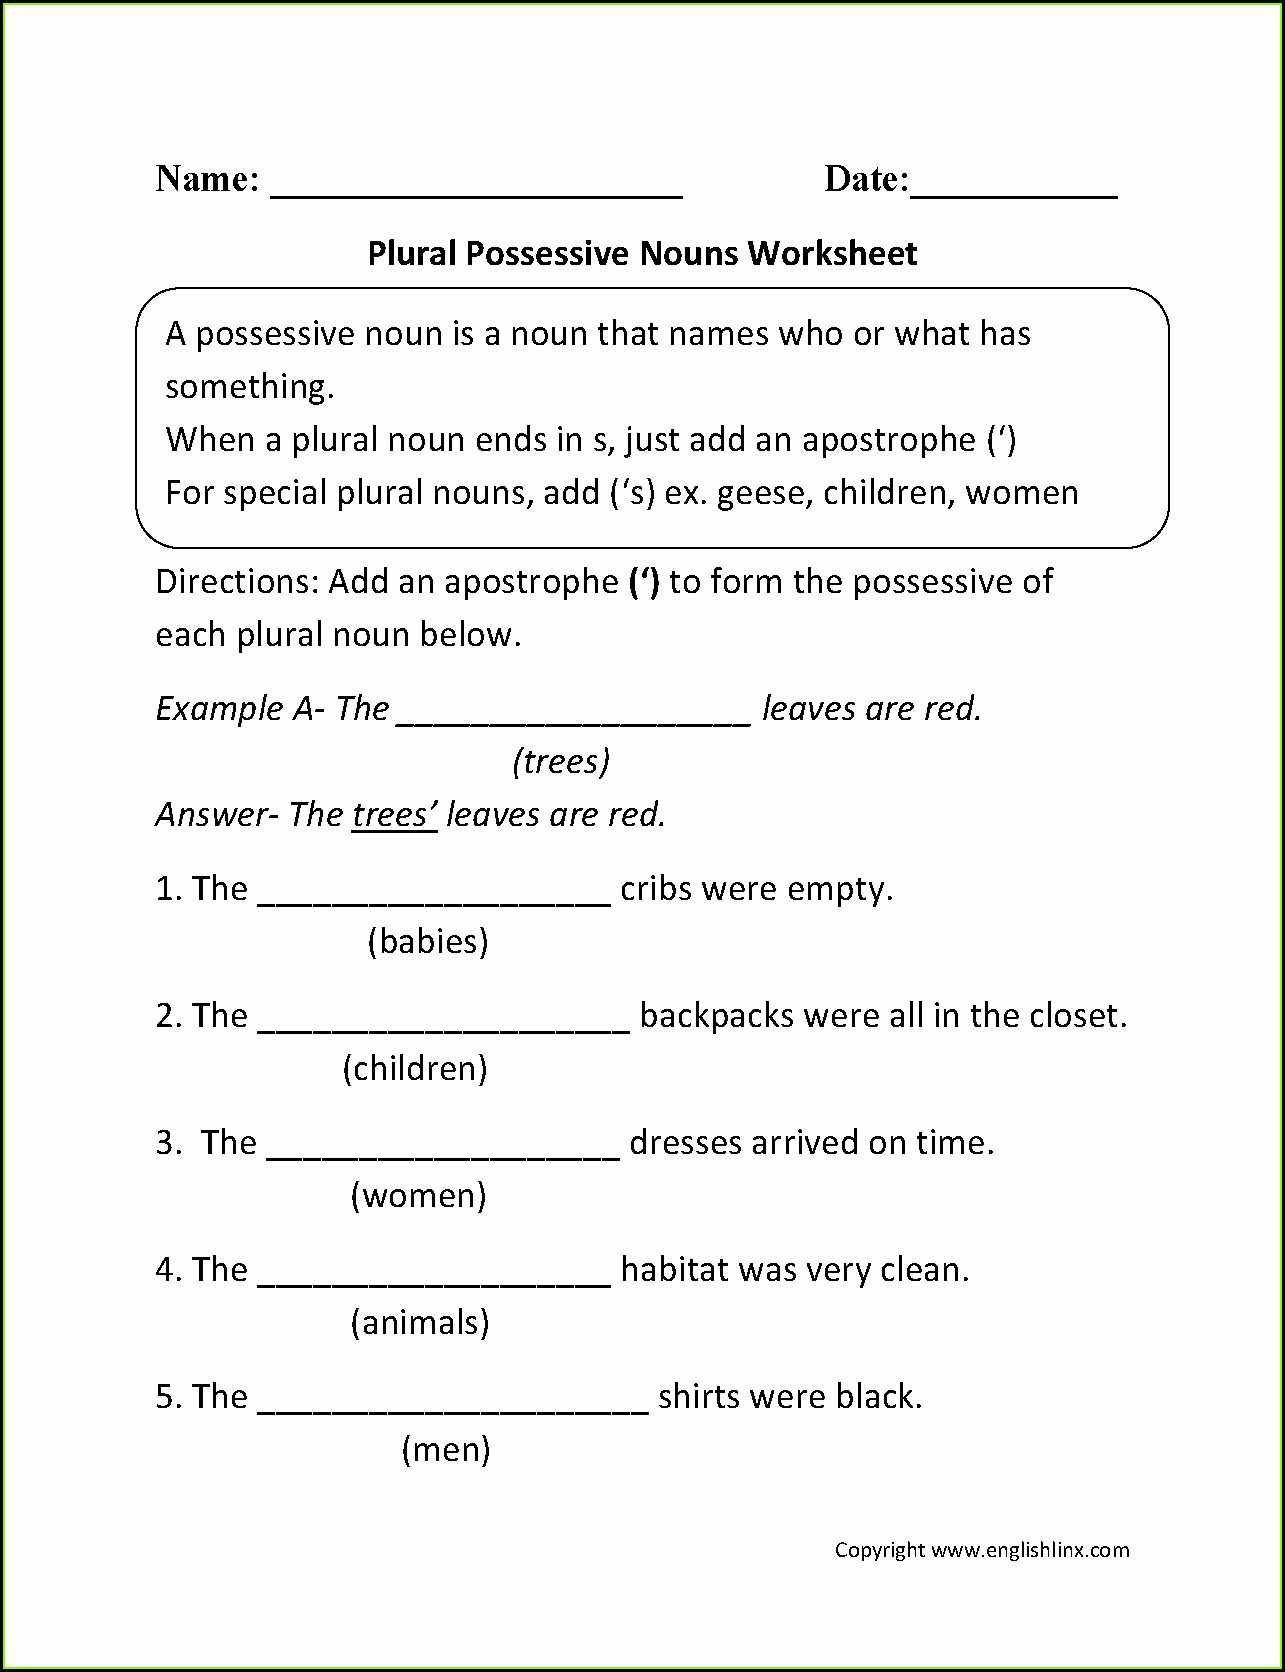 Possessive Pronoun Worksheets 5th Grade Possessive Pronouns Worksheet 5th Grade